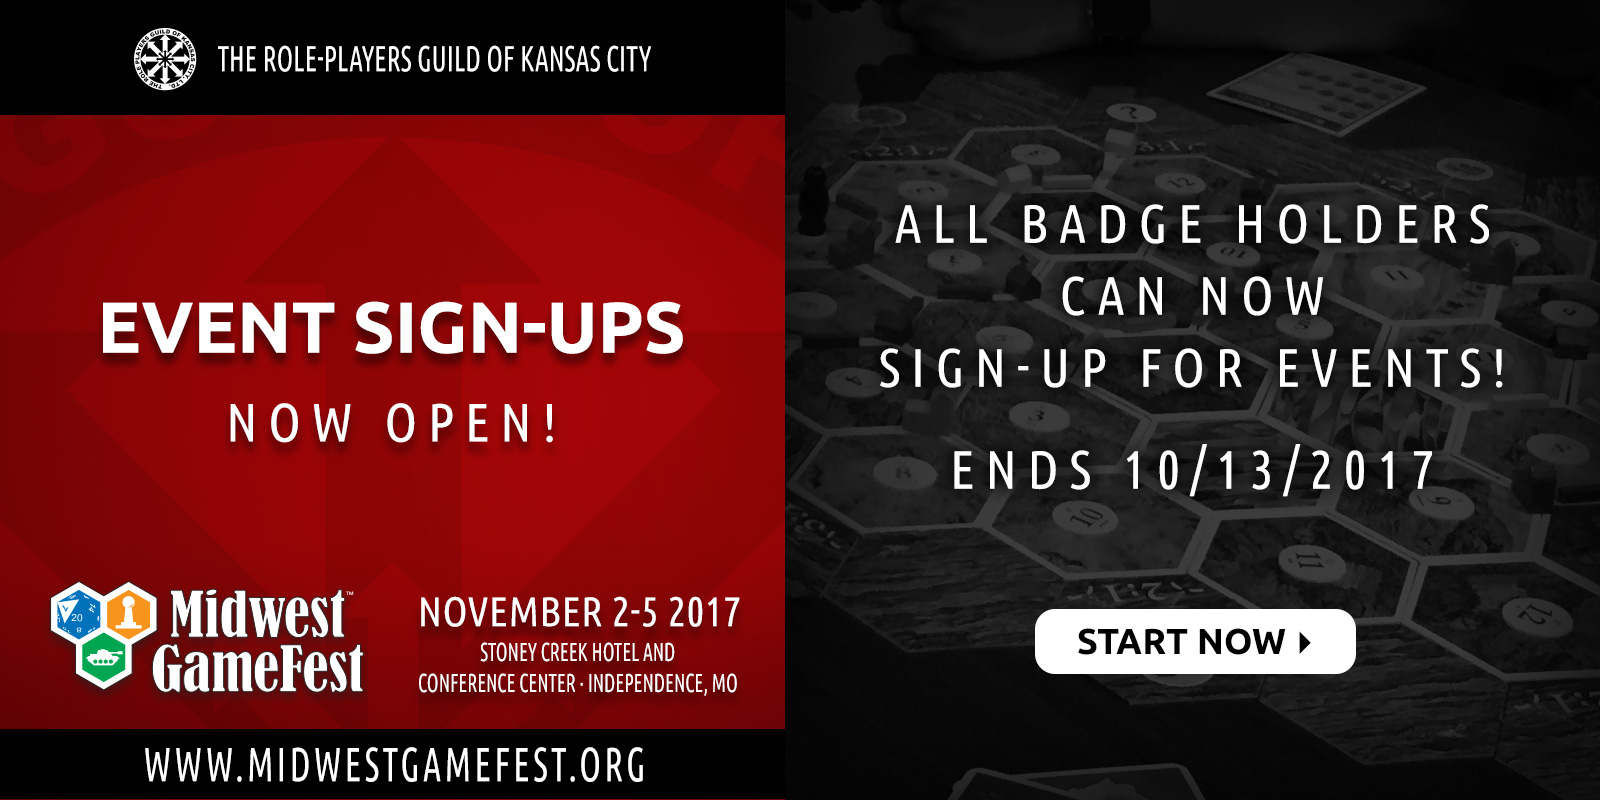 Event Sign-upS Now Open